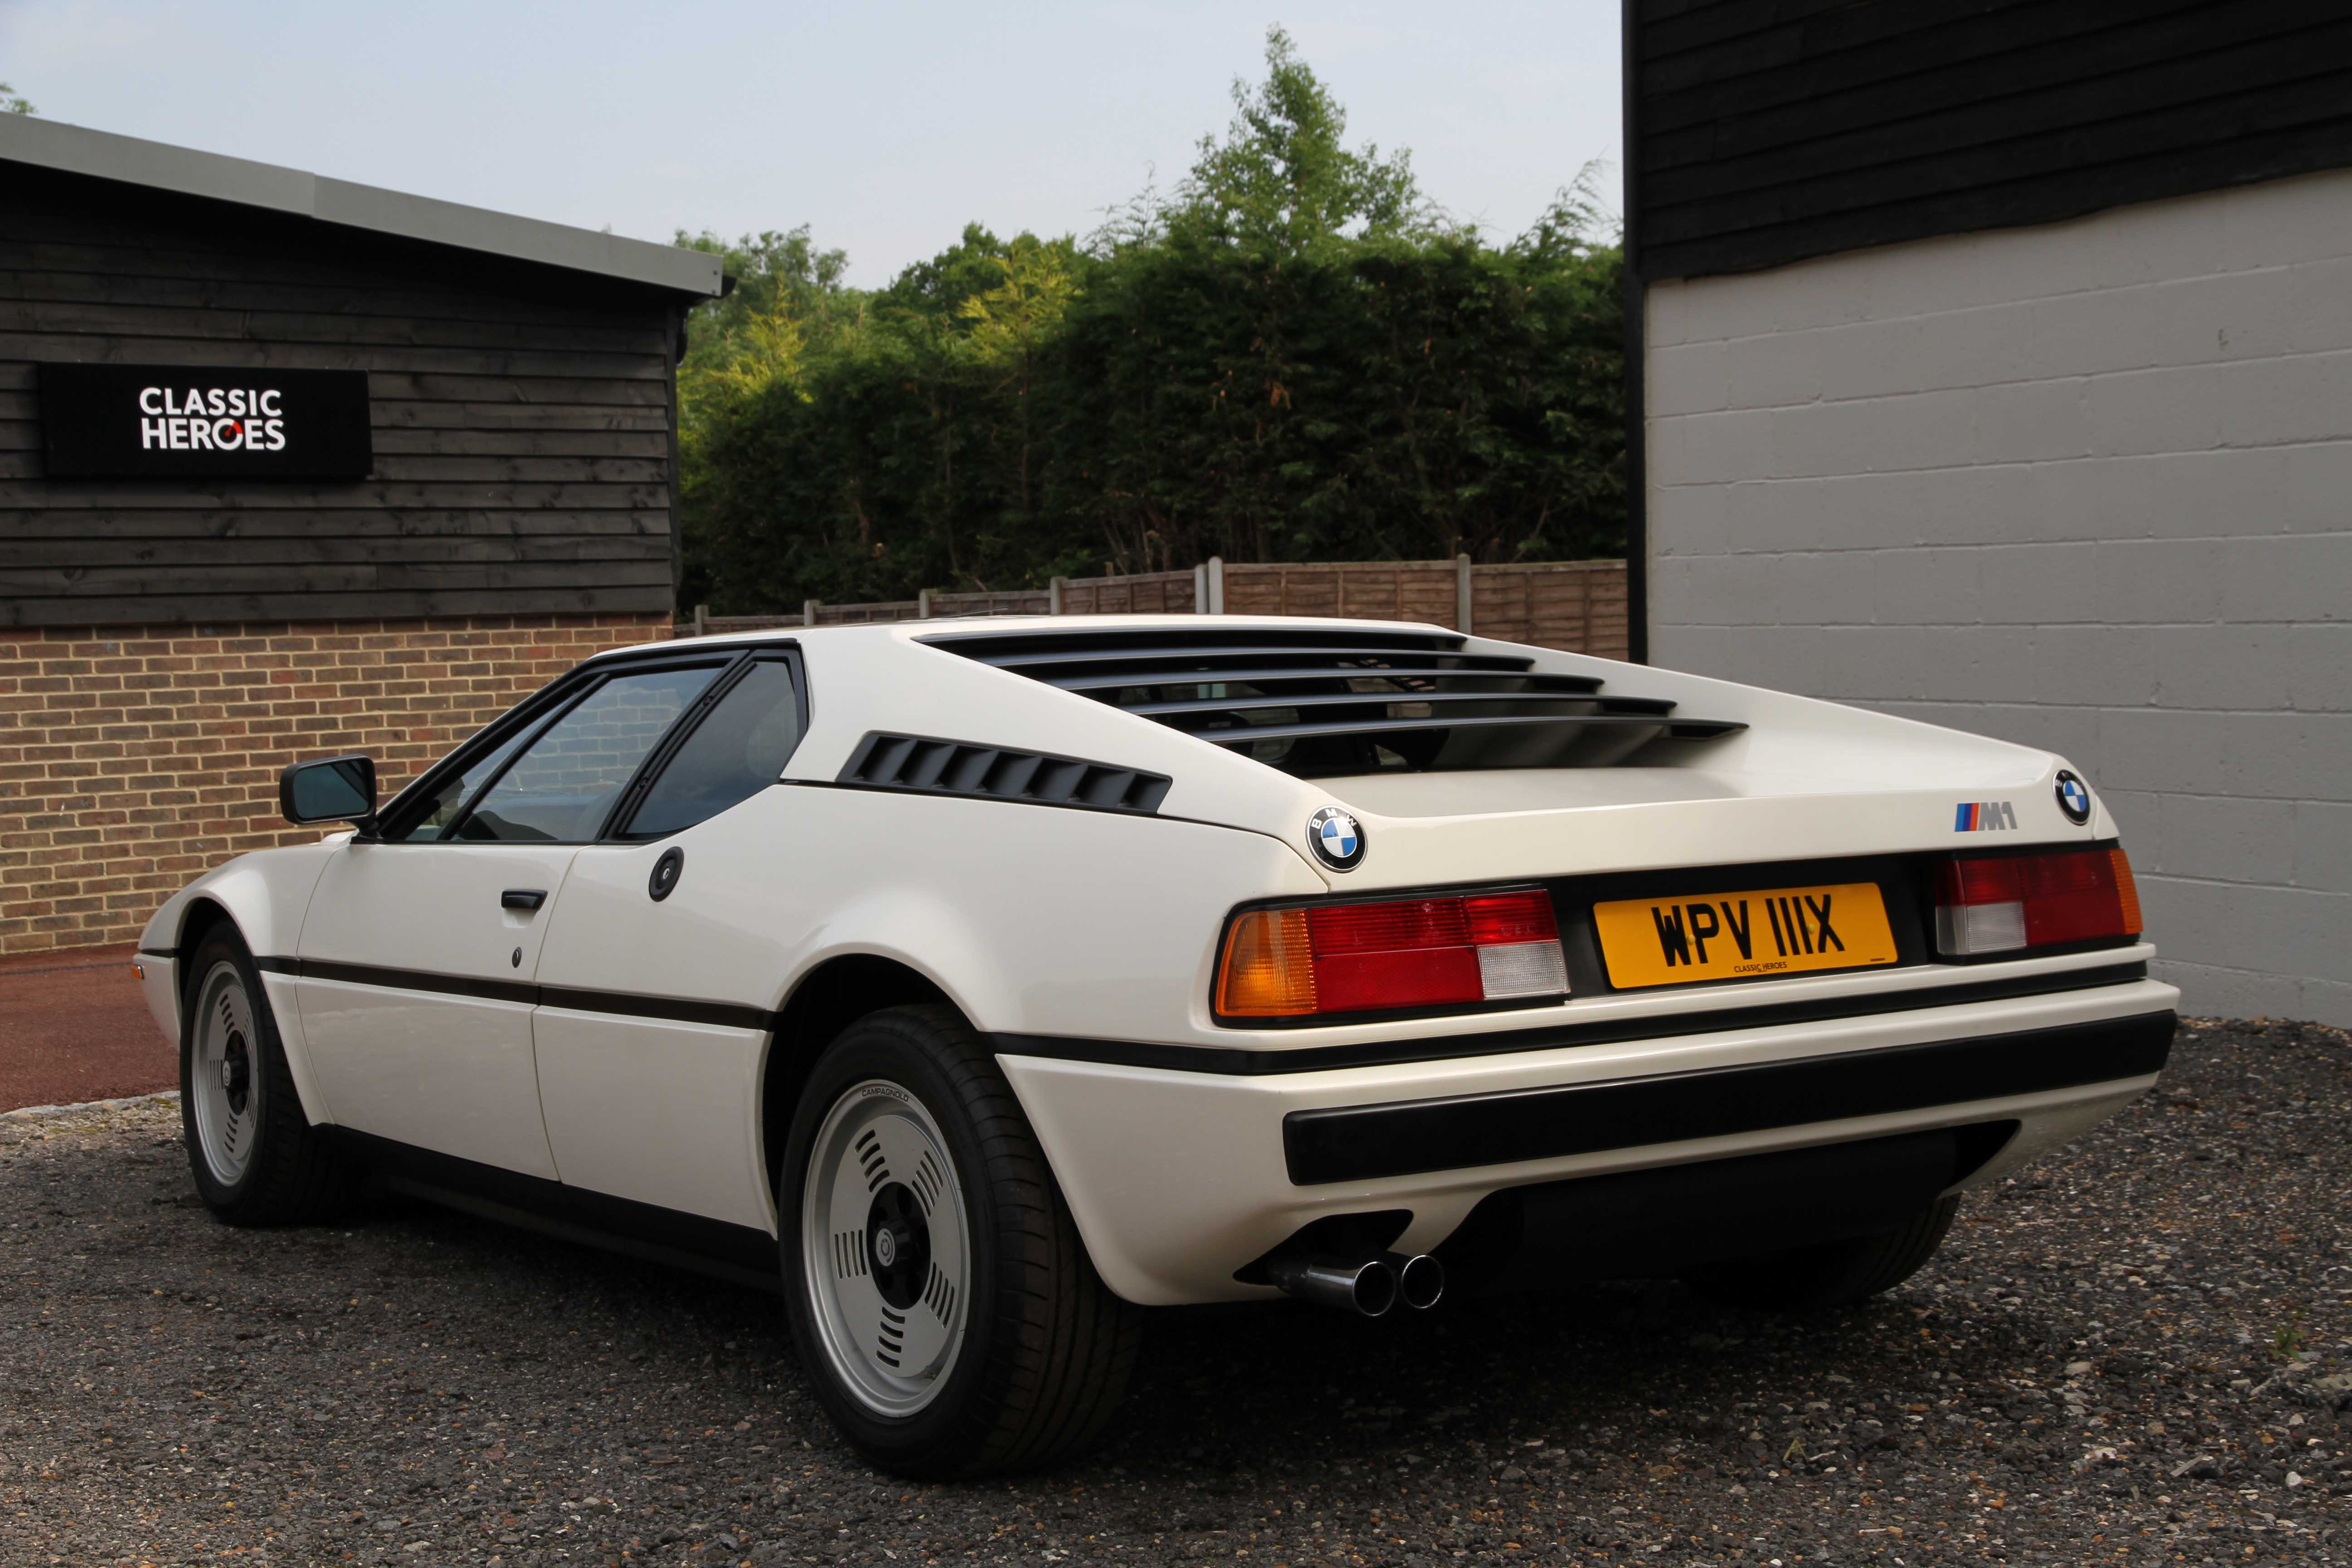 BMW M1 For Sale >> Bmw M1 For Sale Classic Heroes